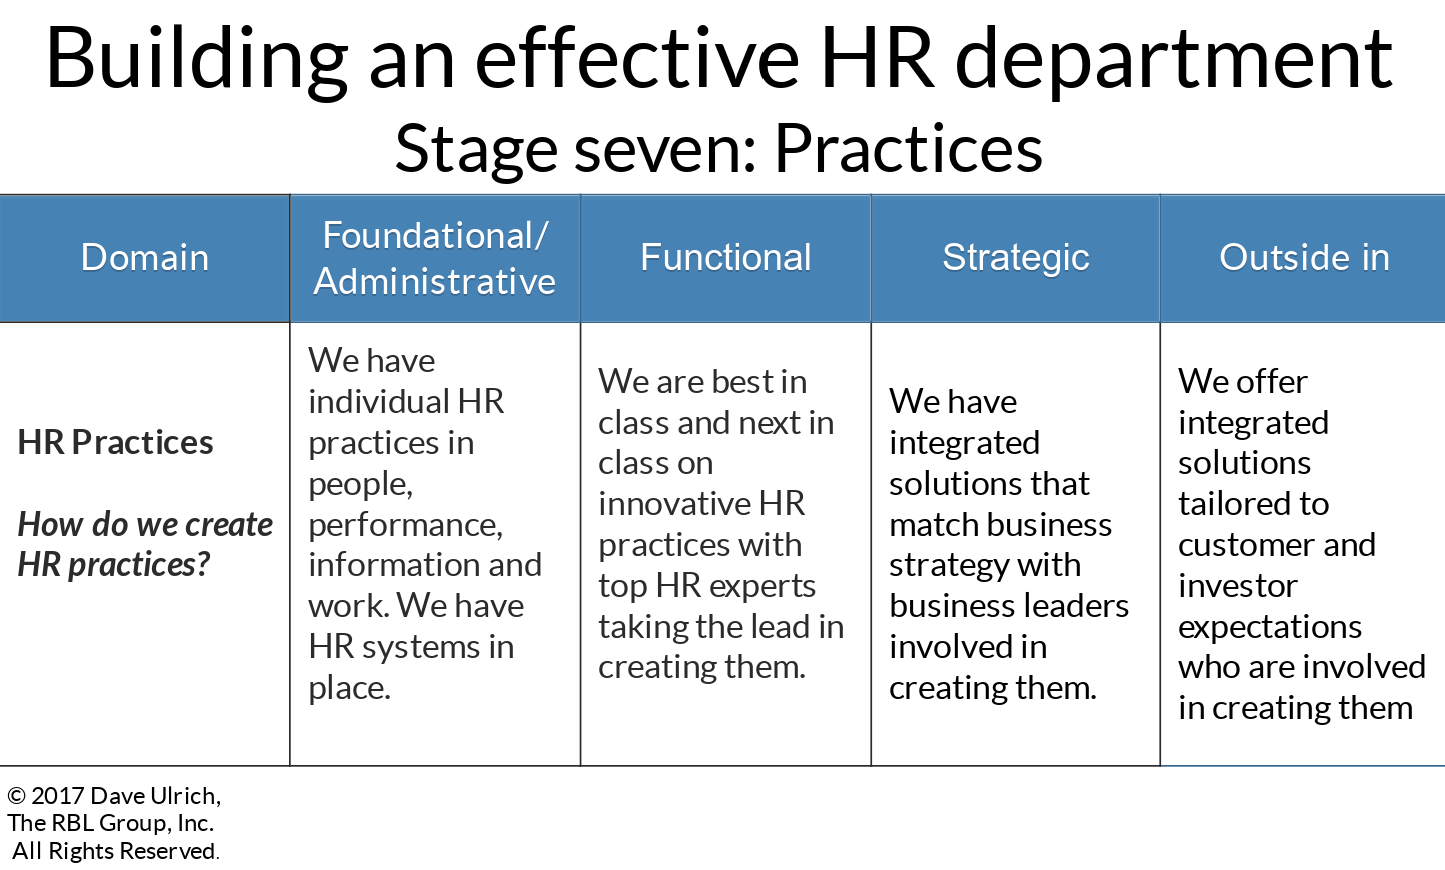 Building an effective HR department stage seven